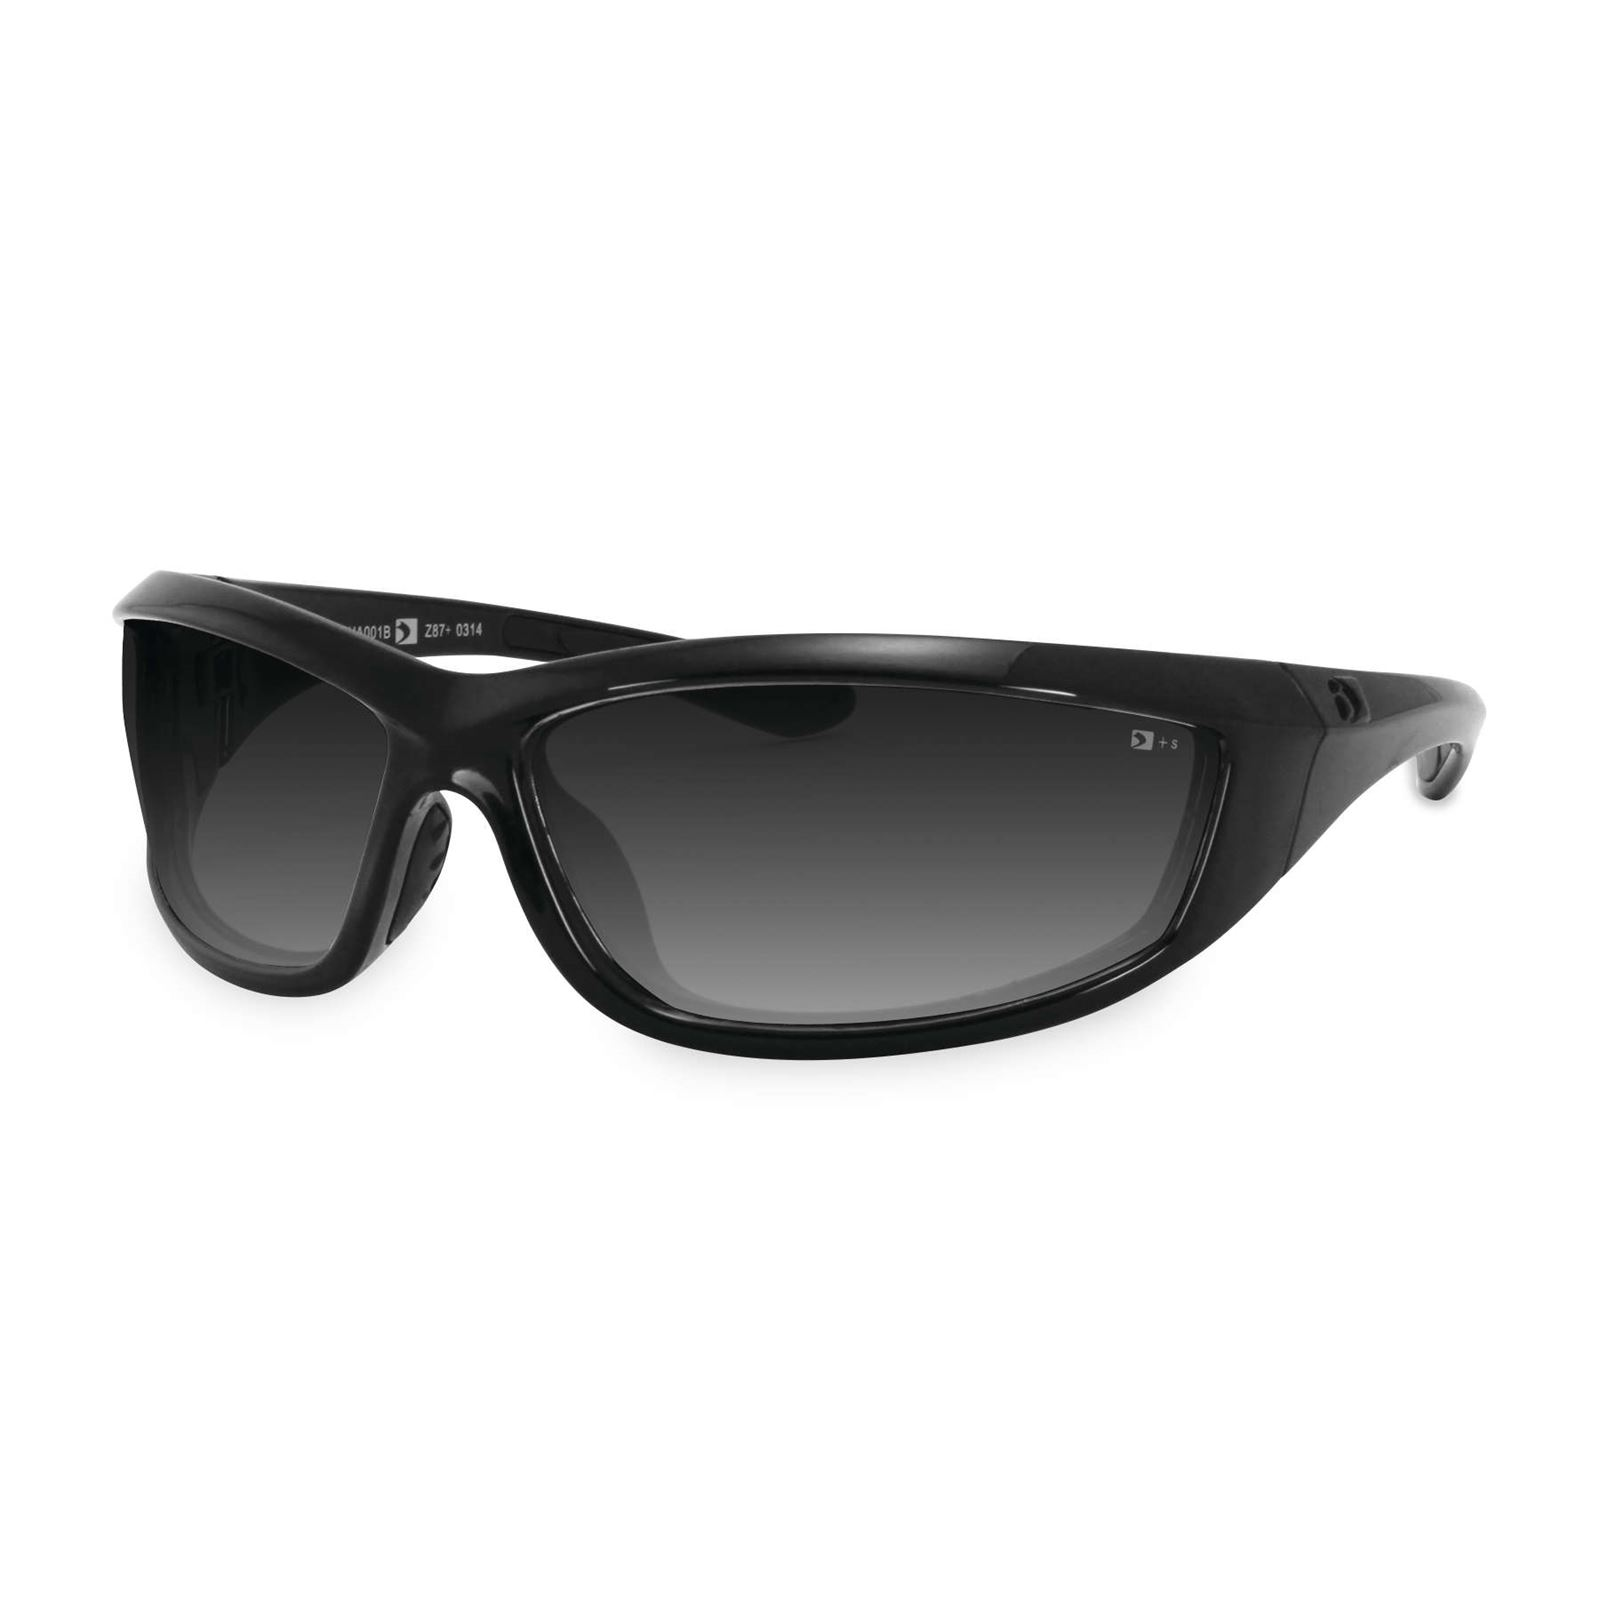 Bobster Charger Sunglasses